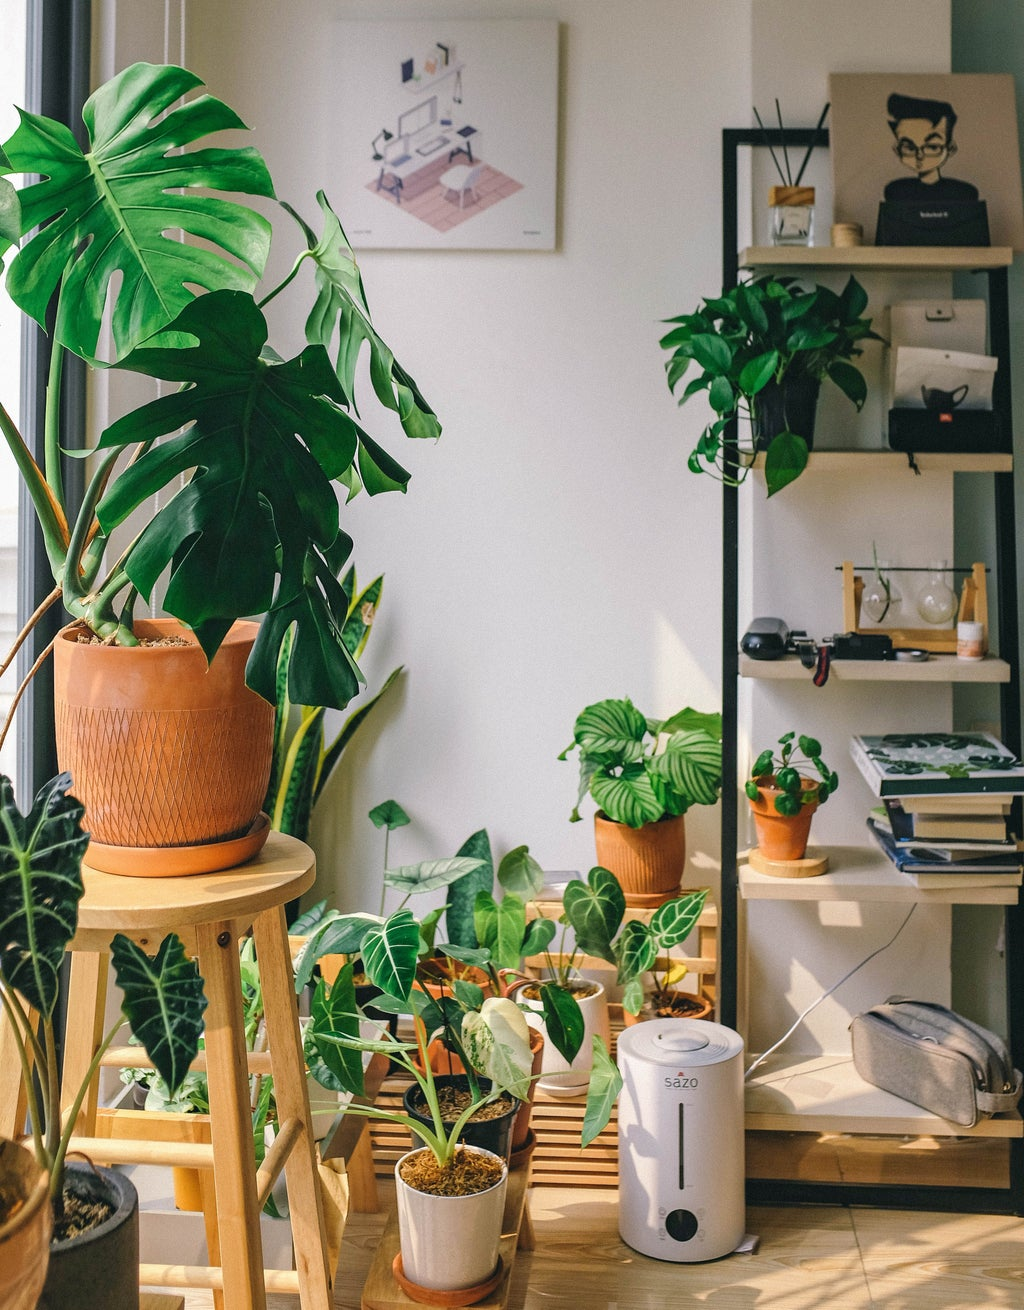 Plants in a house